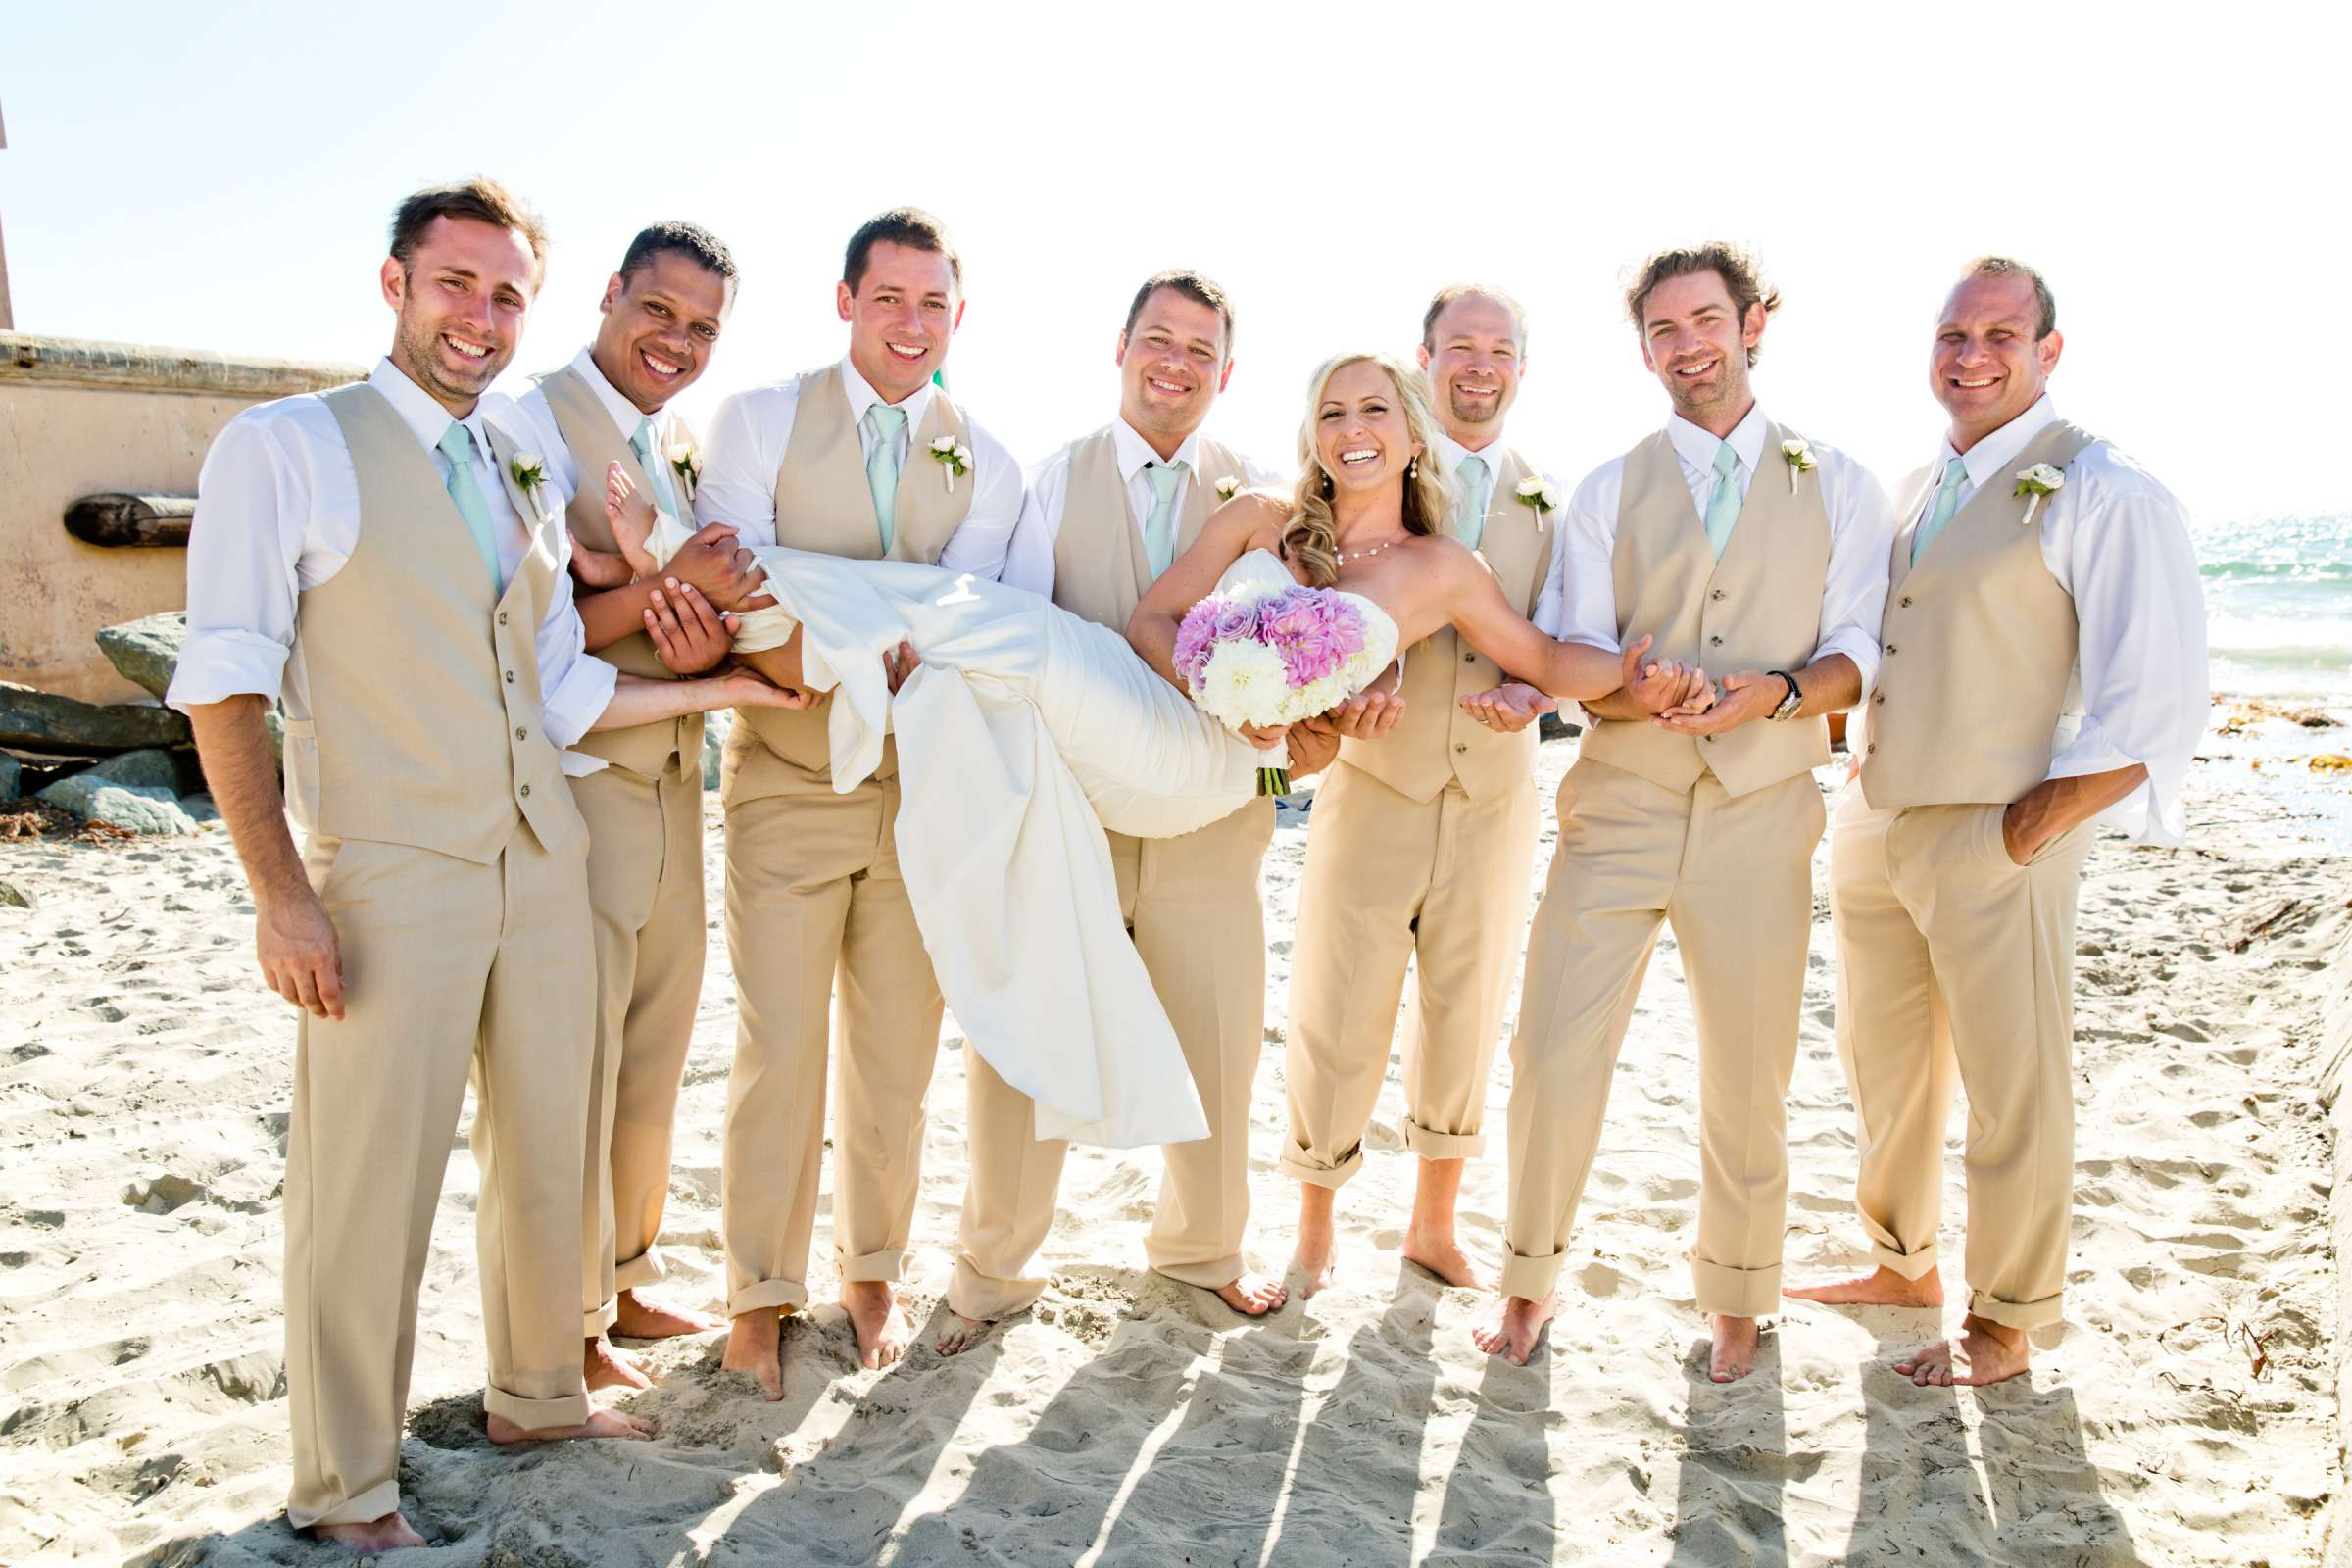 La Jolla Shores Hotel Wedding coordinated by I Do Weddings, Stefanie and Craig Wedding Photo #373314 by True Photography